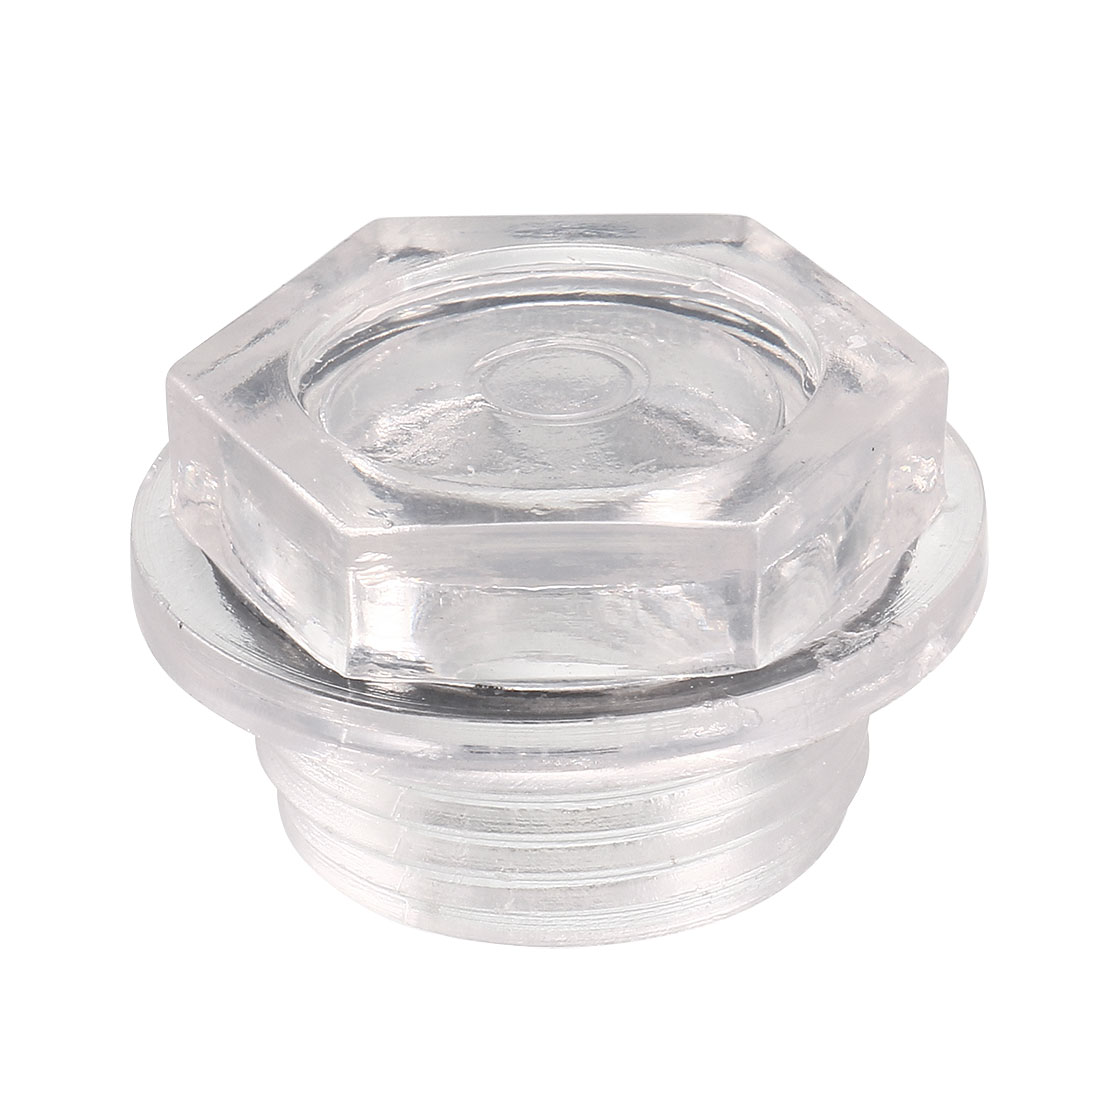 Black Rubber Washer Clear Plastic Oil Level Sight Glass 27mm for Air Compressor